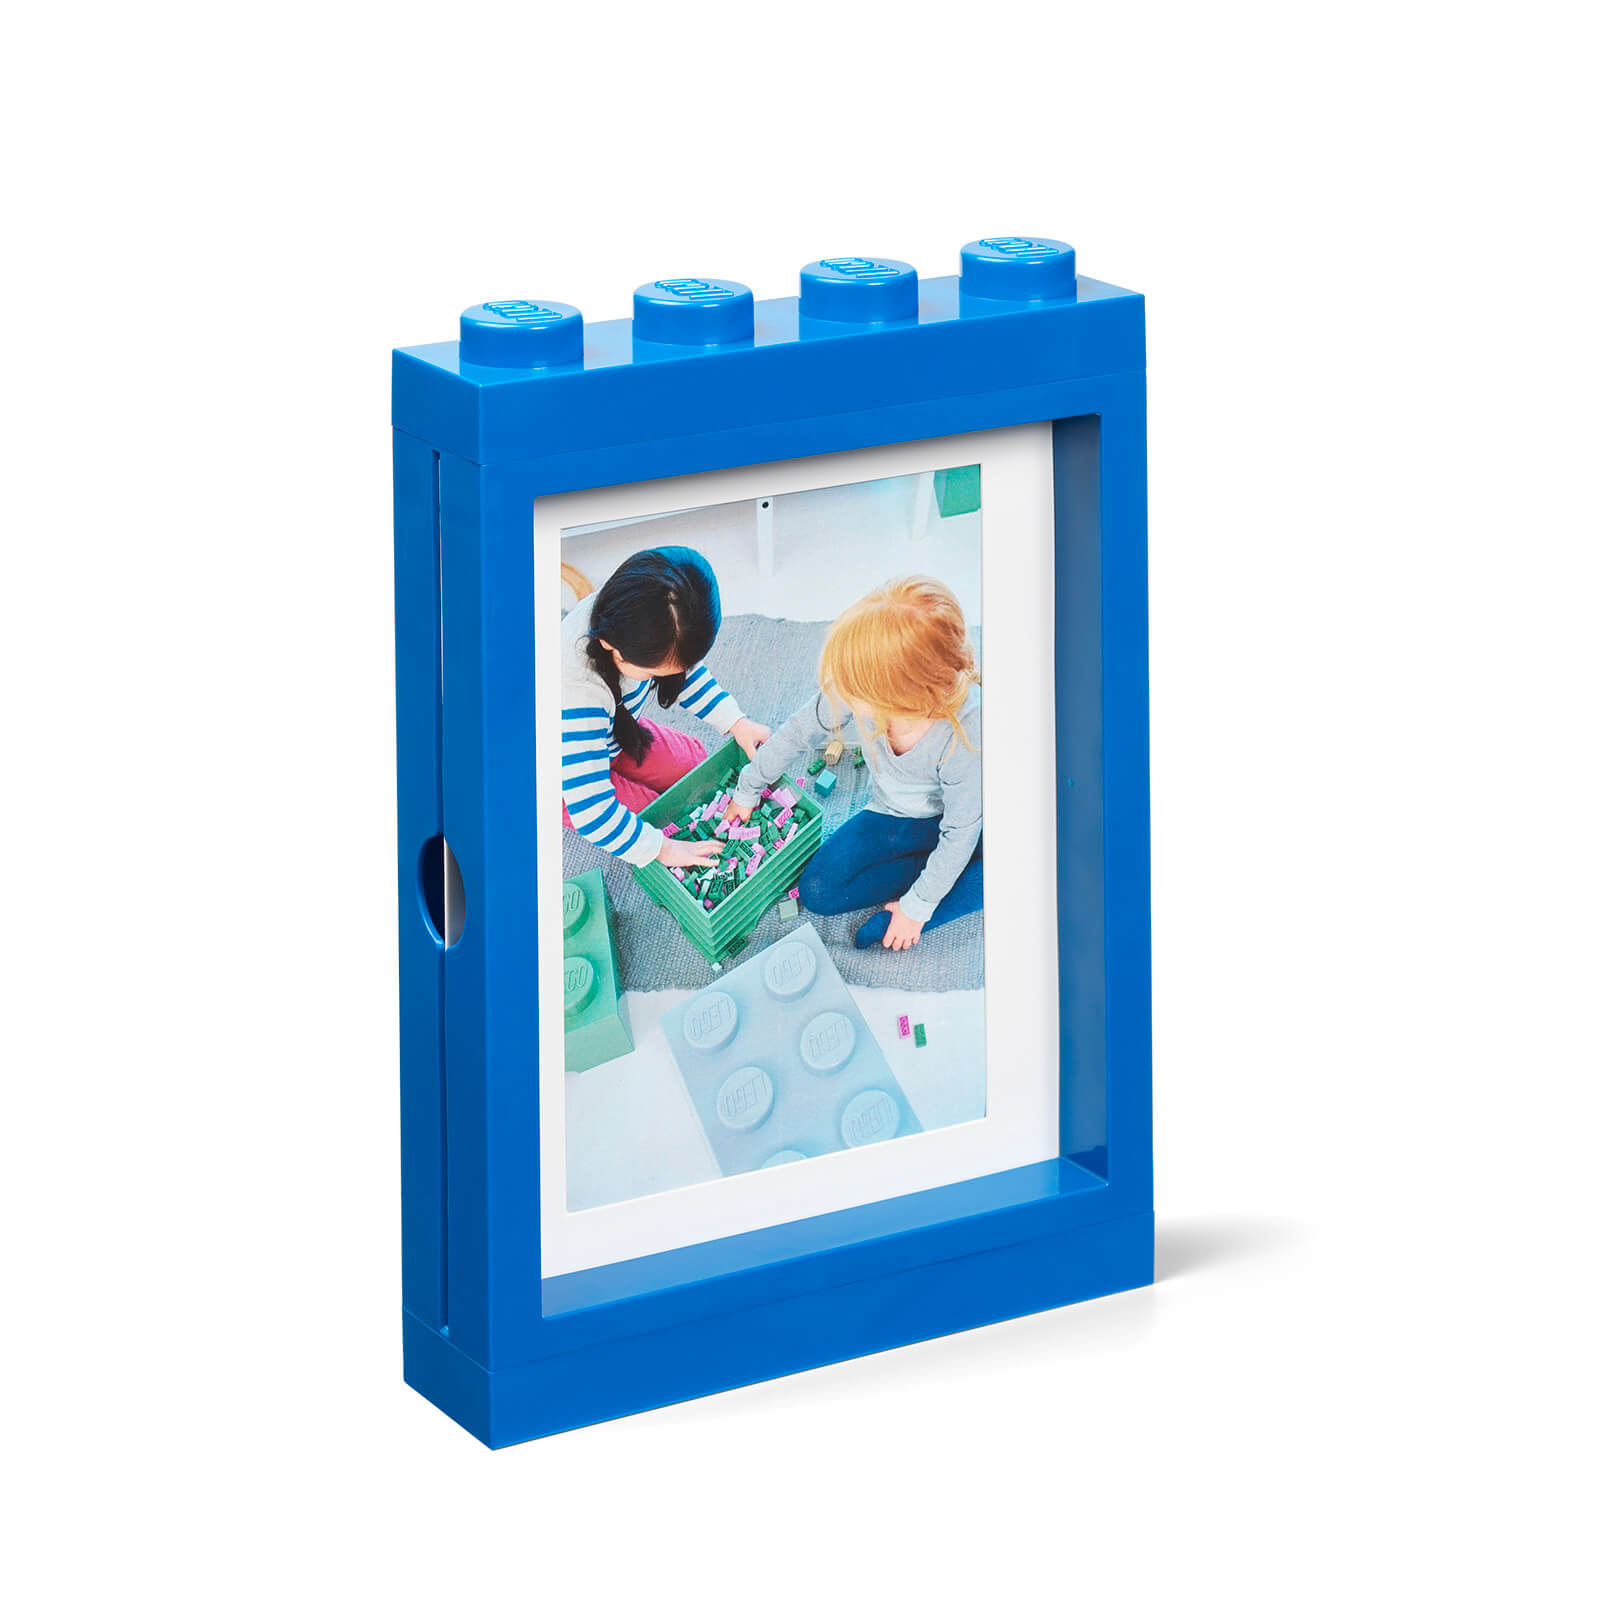 Image of LEGO Picture Frame - Blue